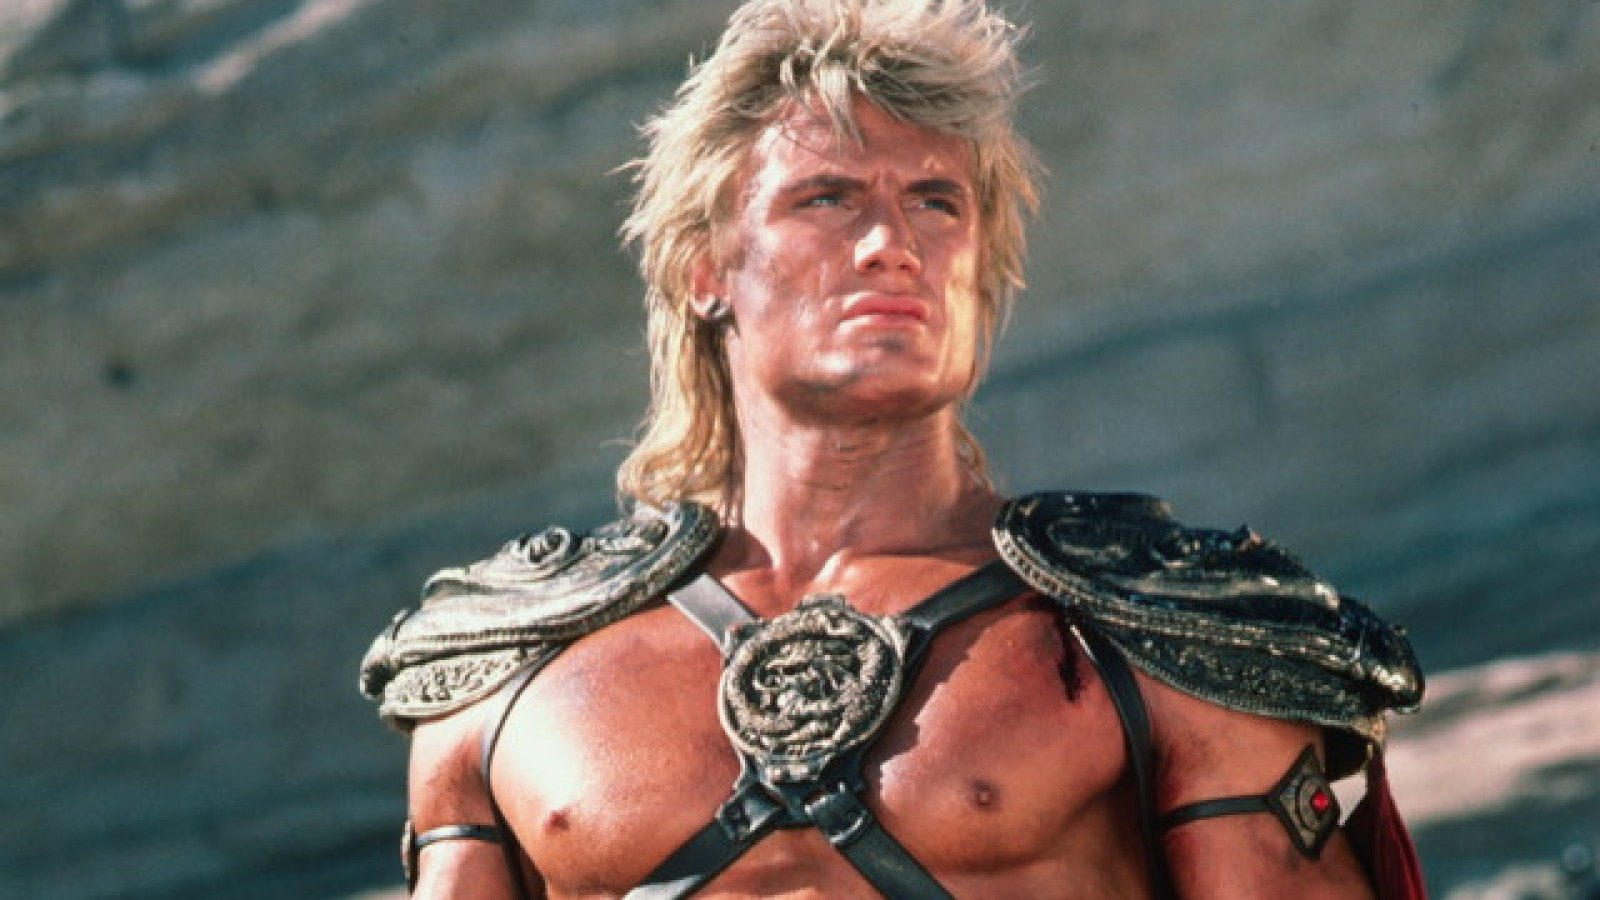 Dolph Lundgren as He-Man in Masters of the Universe (1987)